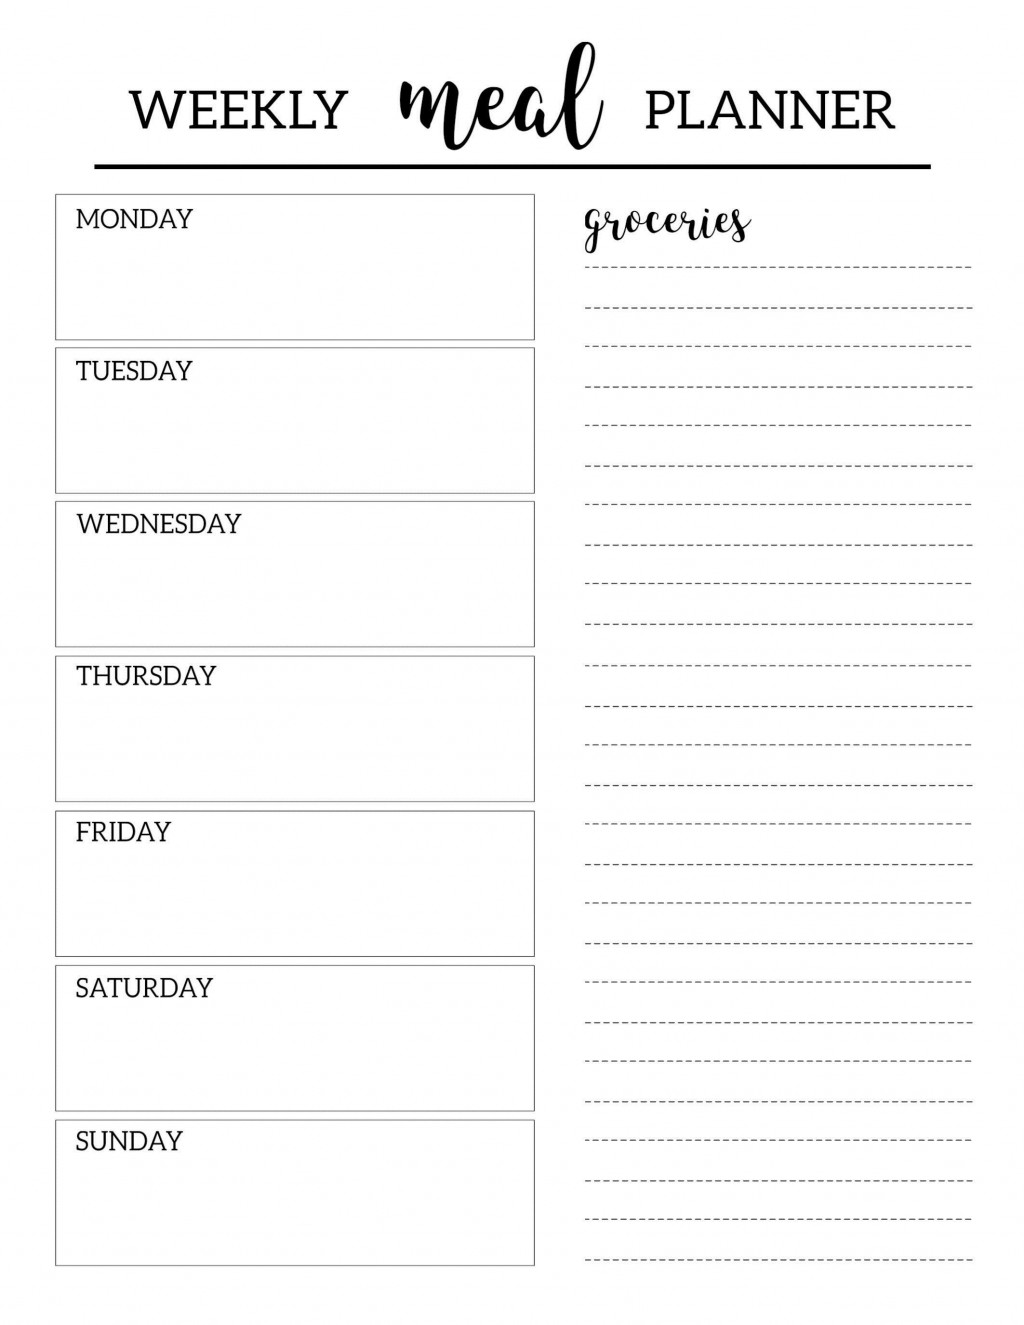 001 Unbelievable Free Meal Planner Template Pdf Photo  Weekly With Grocery List MonthlyLarge